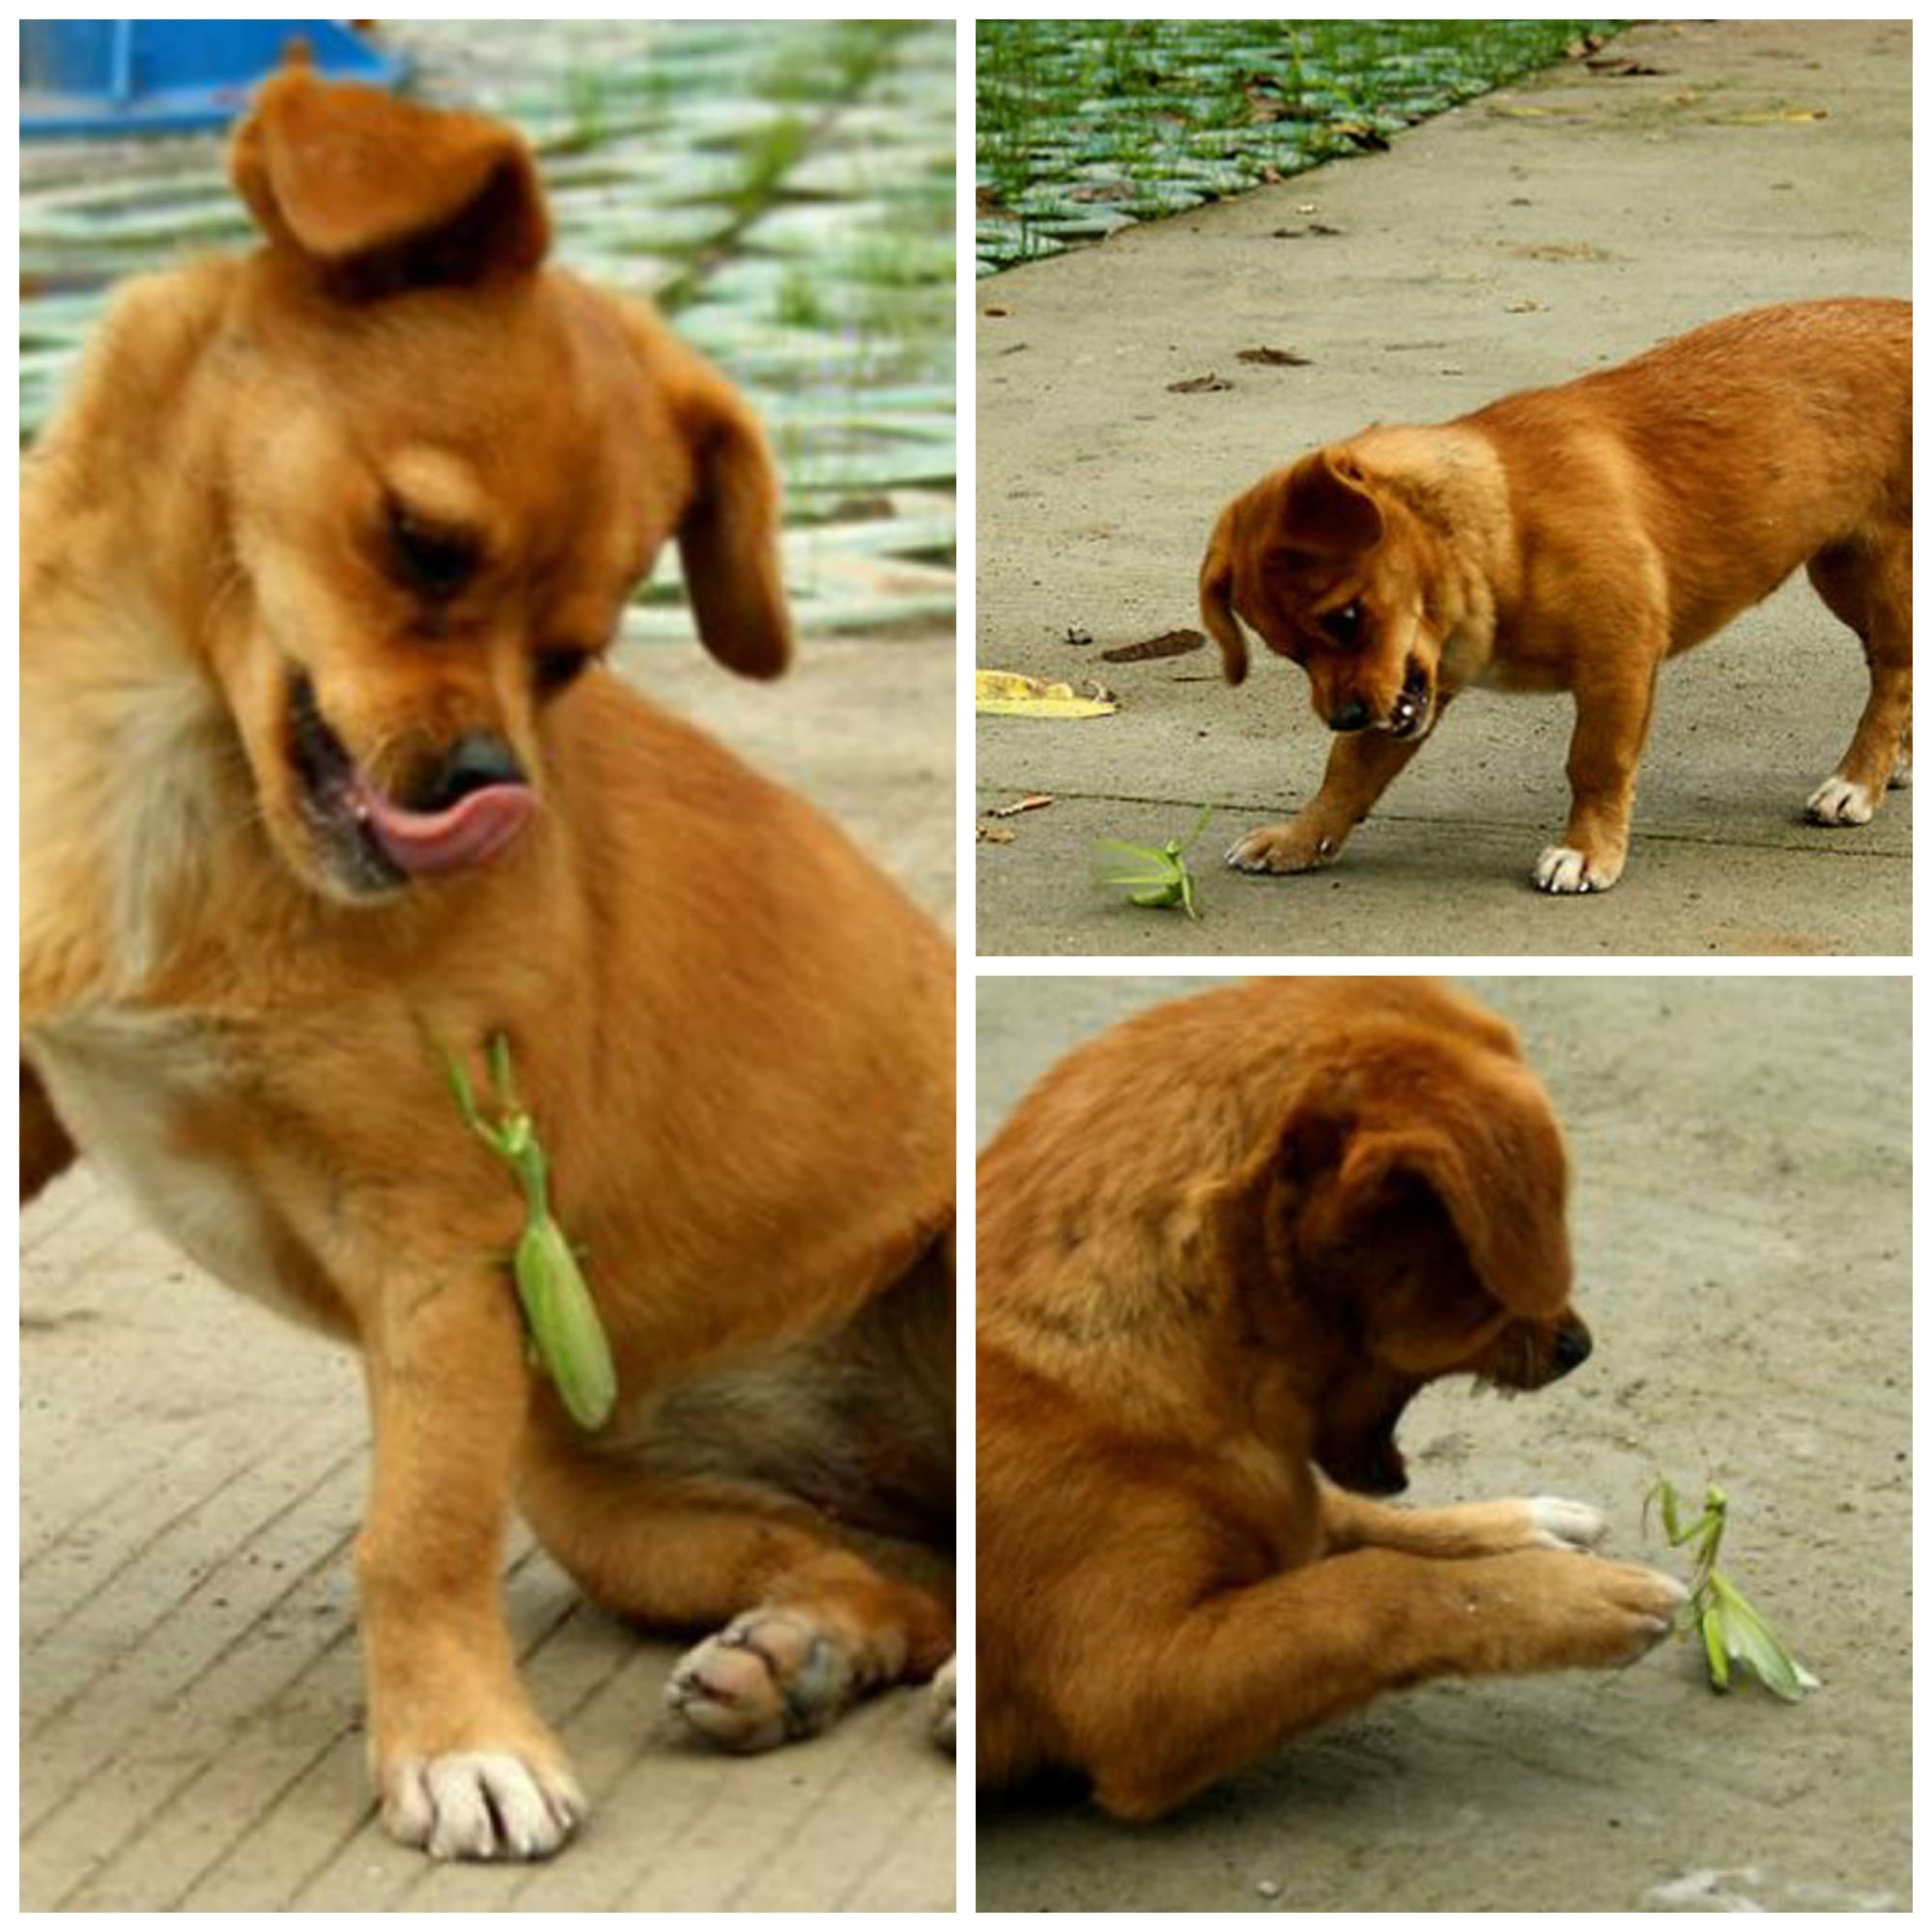 Puppy+With+Preying+Mantis.jpgPuppy+With+Preying+Mantis